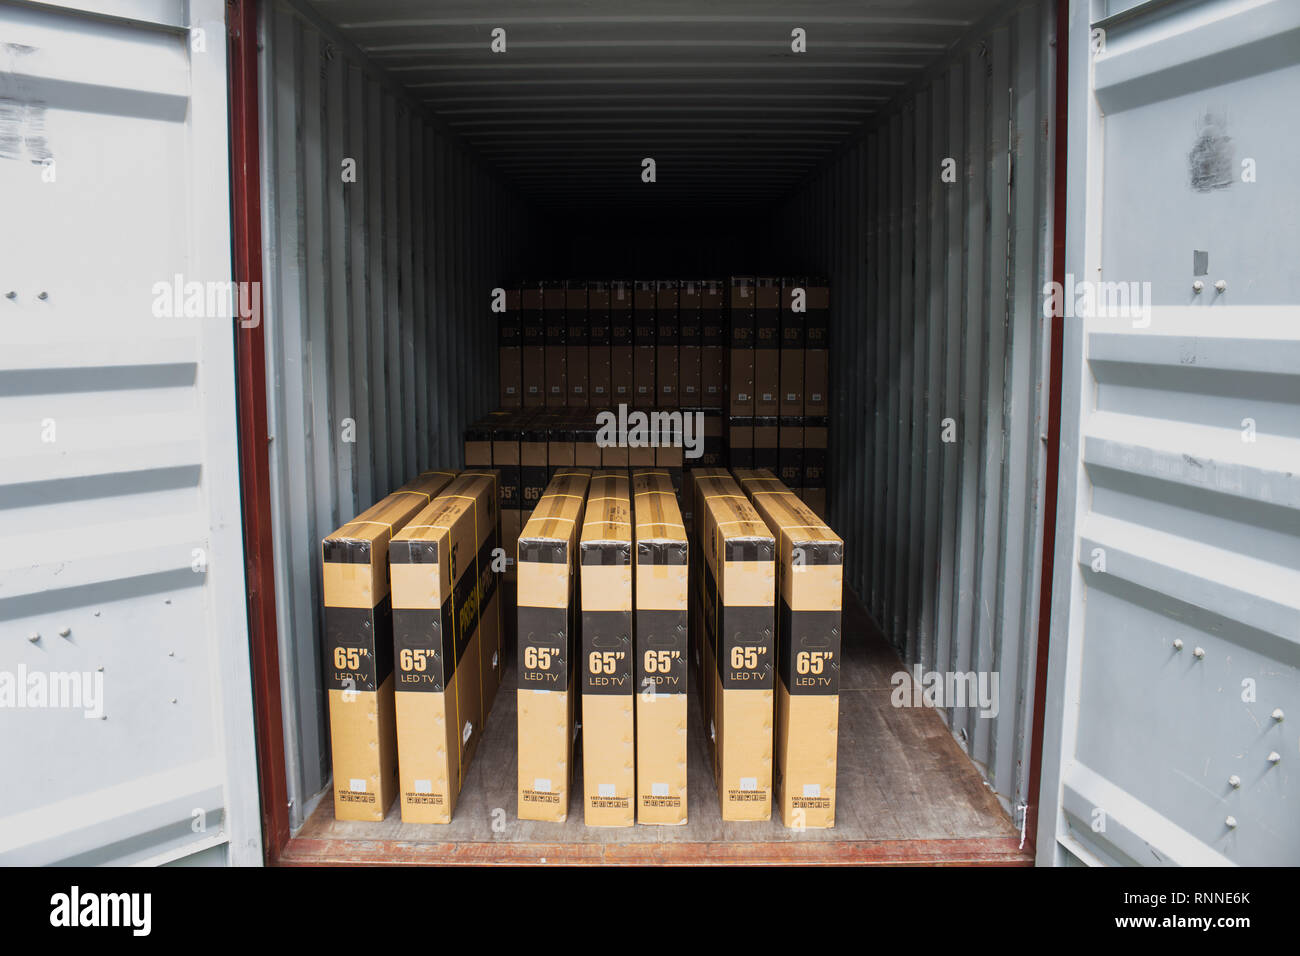 The cartons with loading into of container Stock Photo